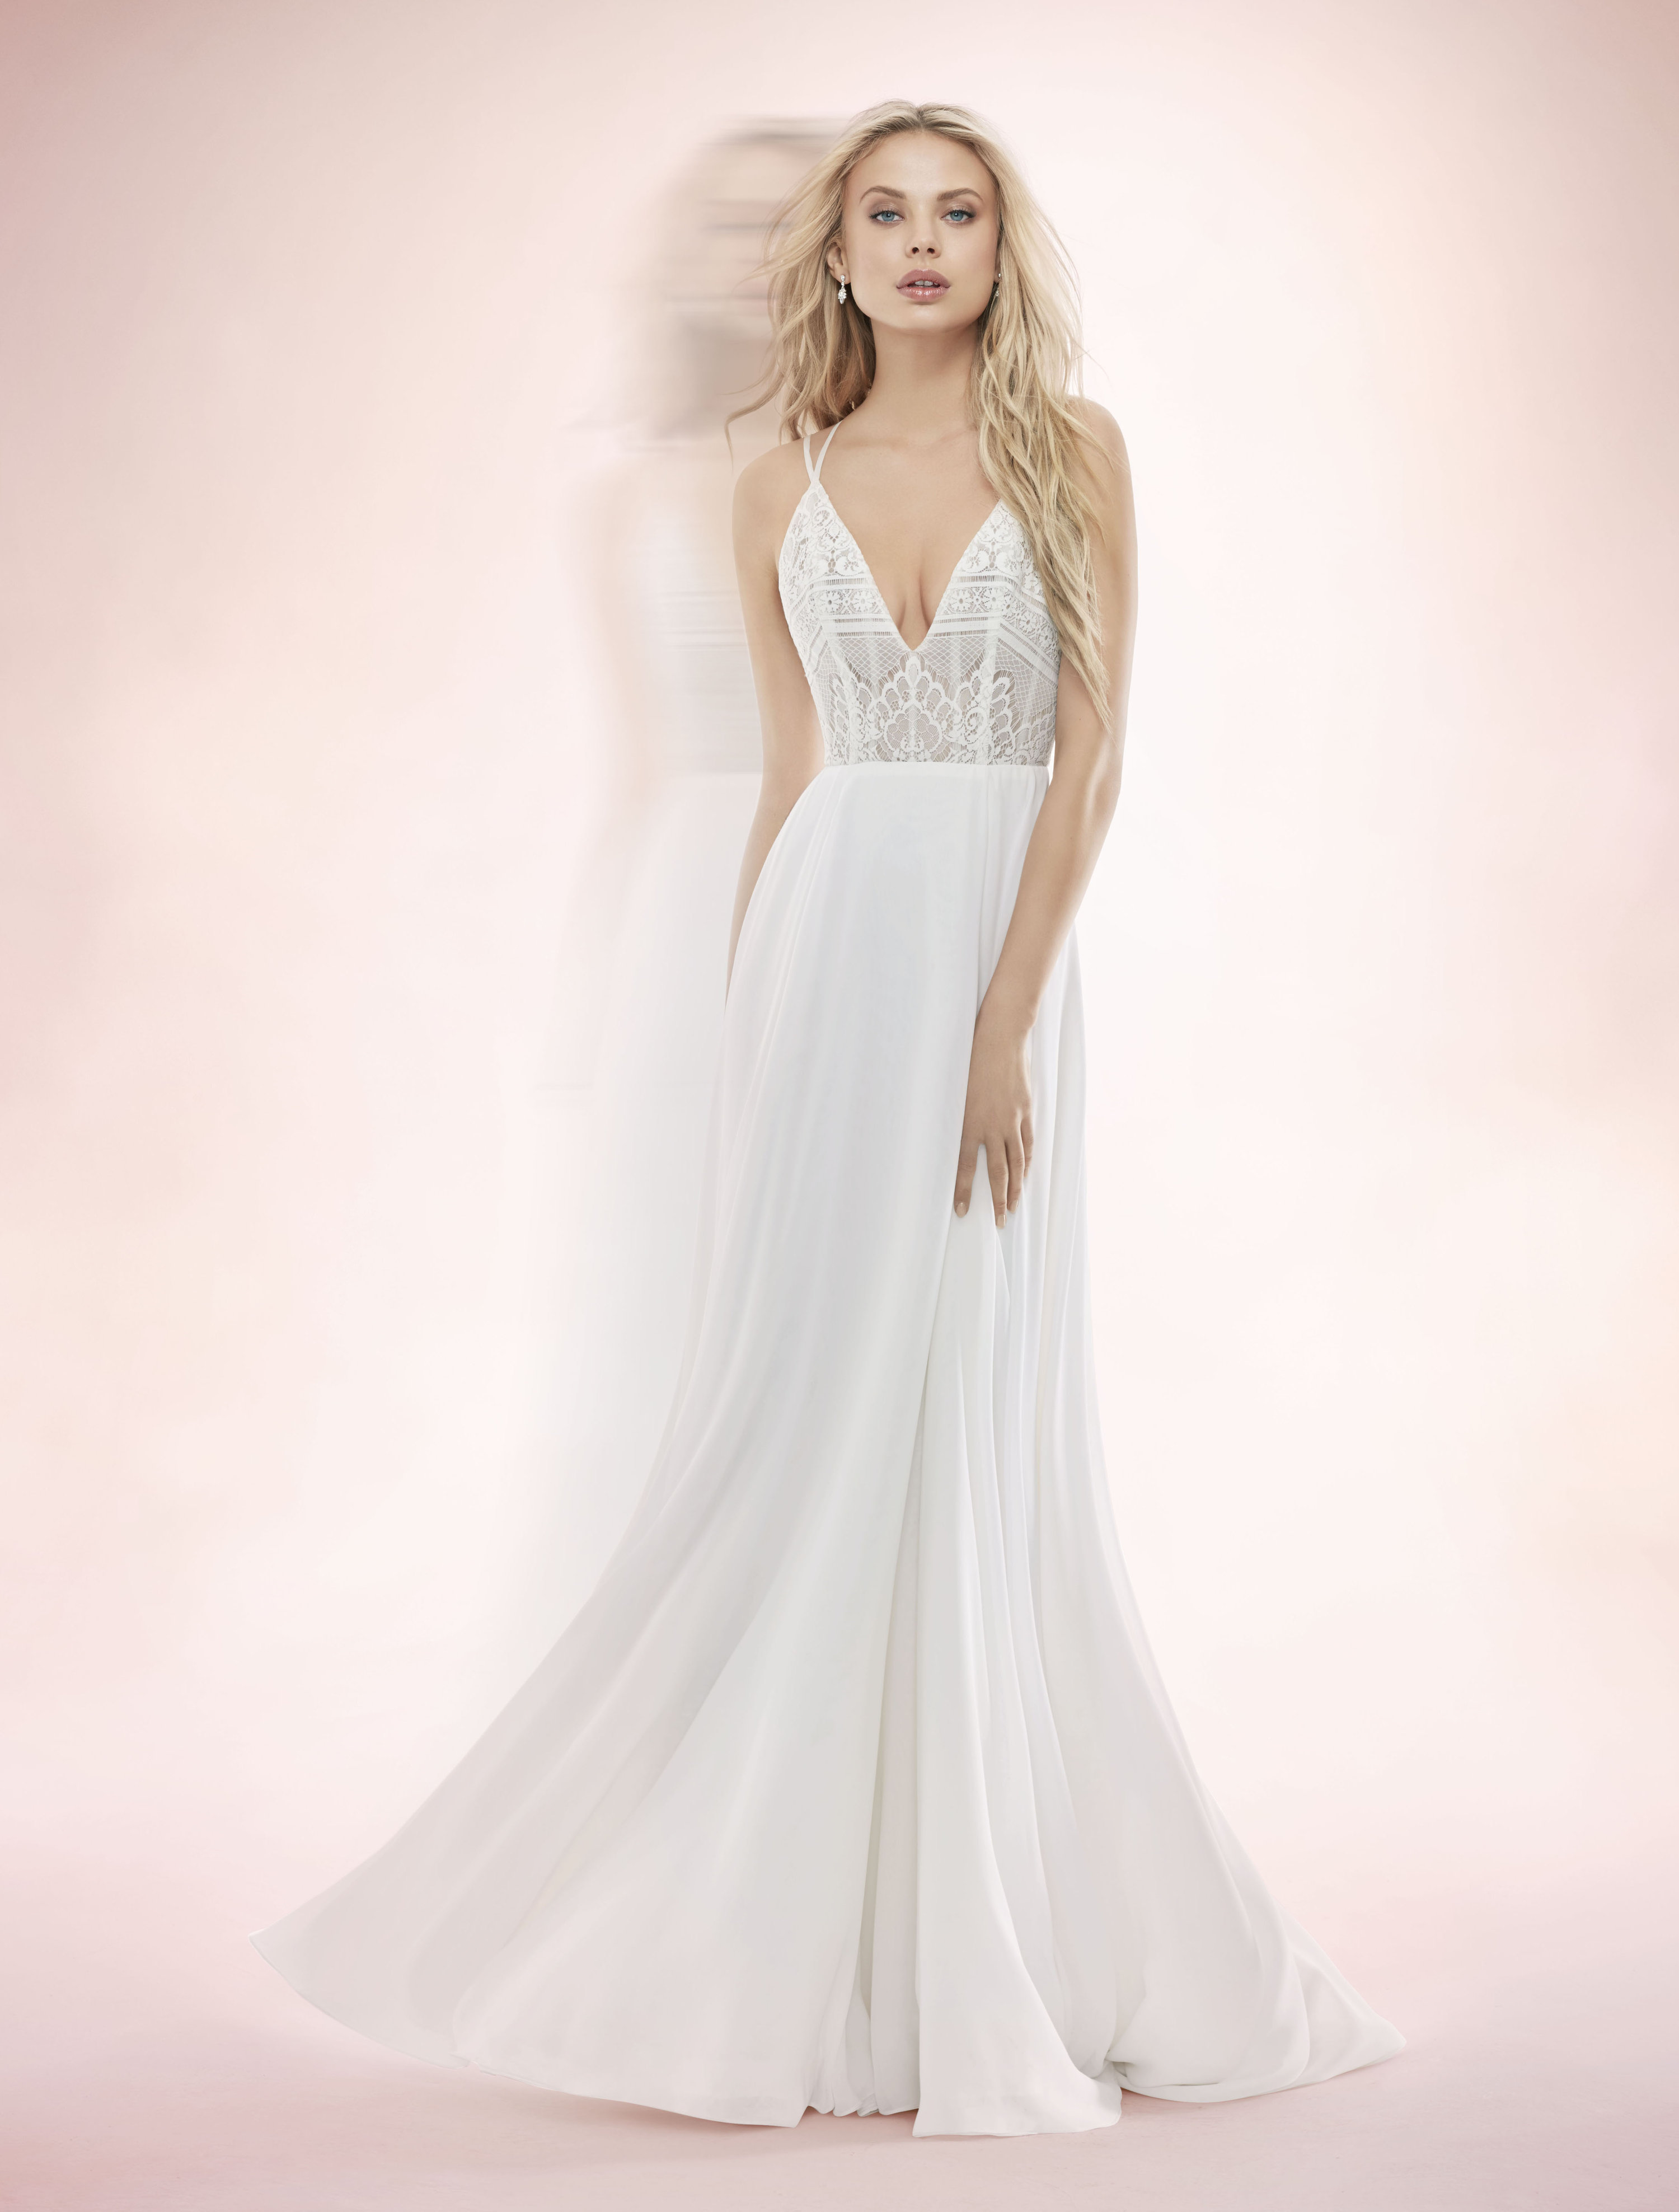 03bfe105154d Bridal Gowns and Wedding Dresses by JLM Couture - Style 1707 Bunny